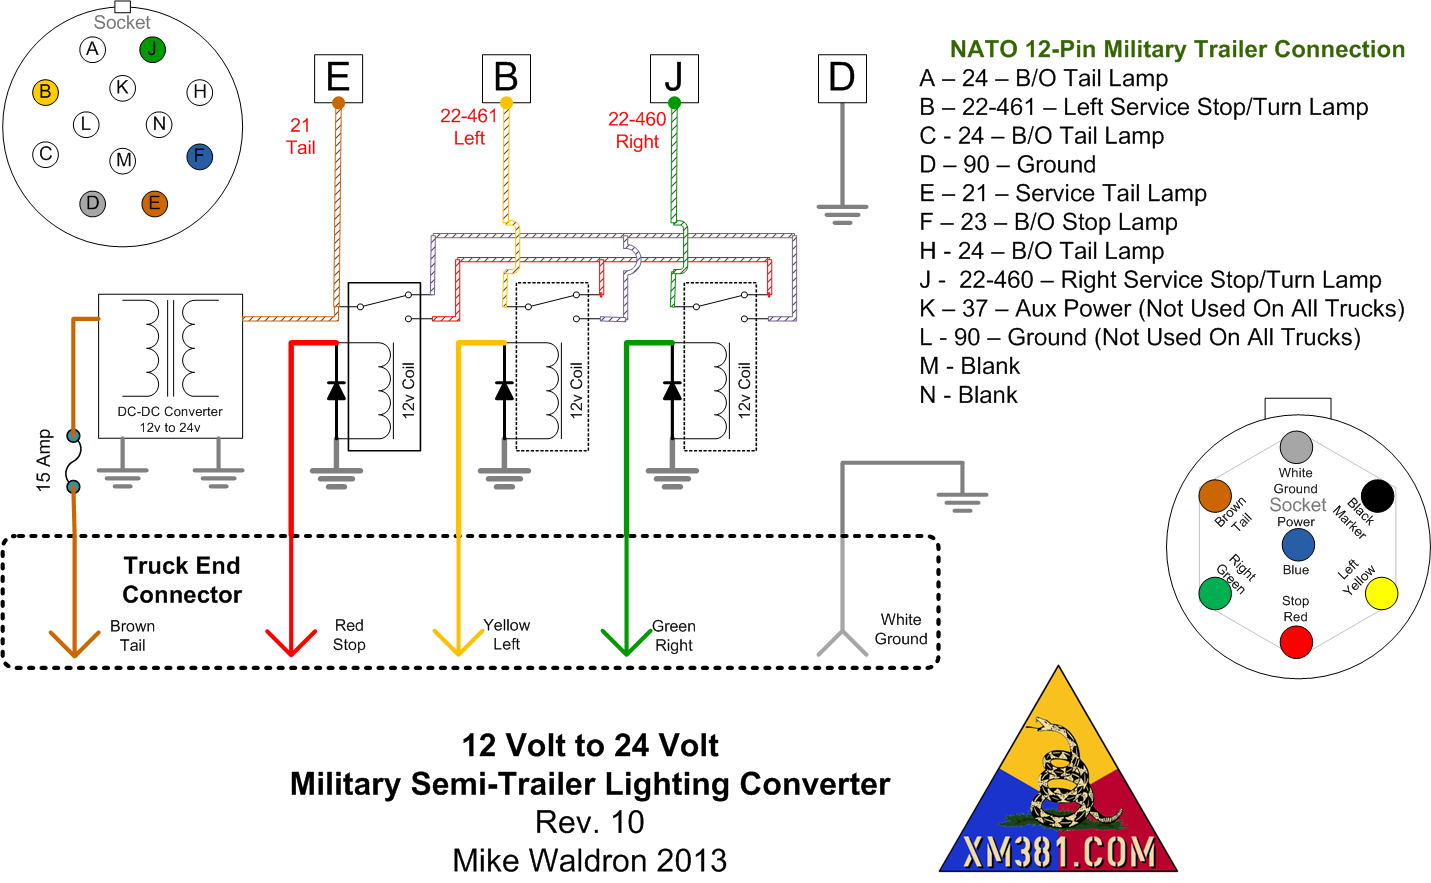 Civi Light Plans Military Semi Trailer xm381 12 volt civllian truck to 24 volt military trailer lighting